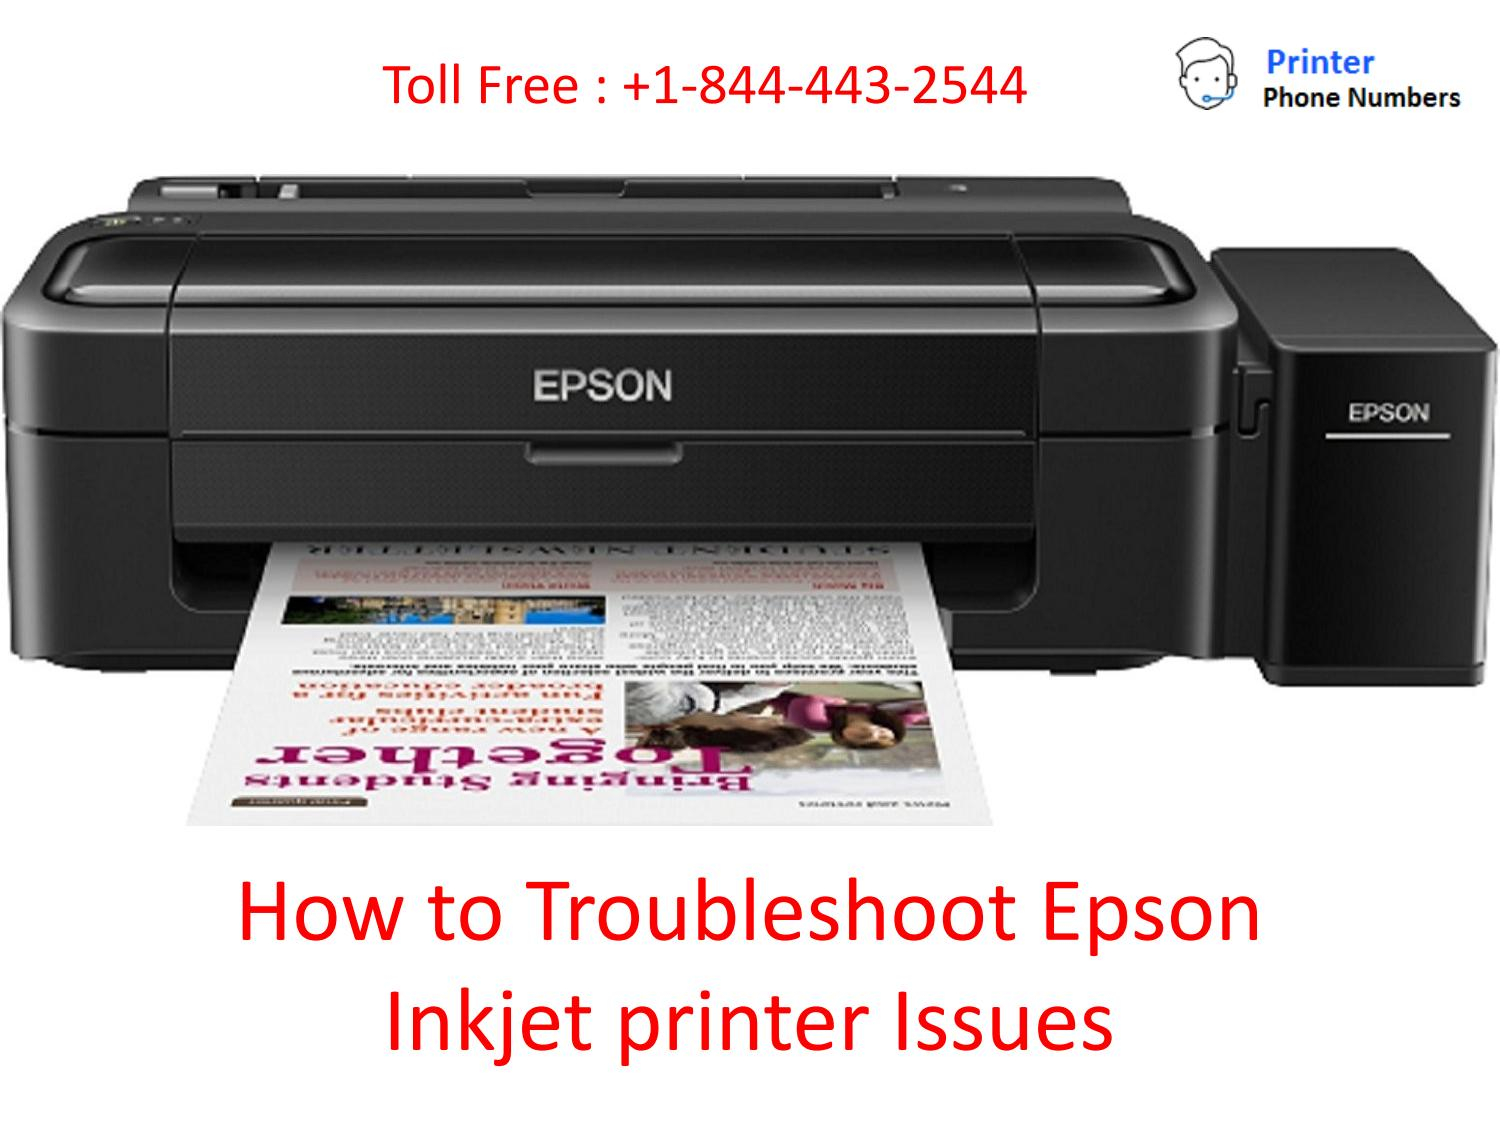 How to fix epson printer error w 13 code by printersnumber - issuu